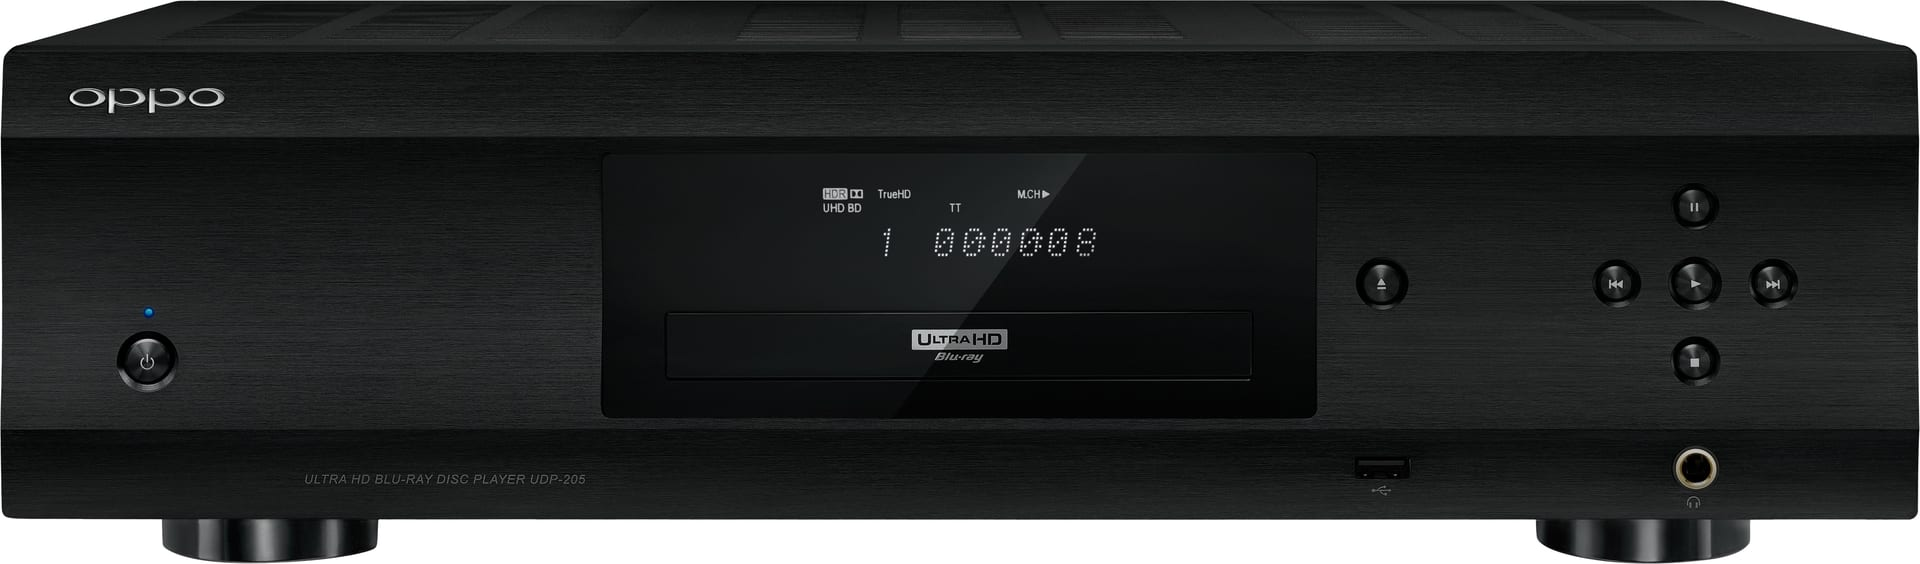 Oppo Digital UDP-205 Multi-Format Disc Player and DAC